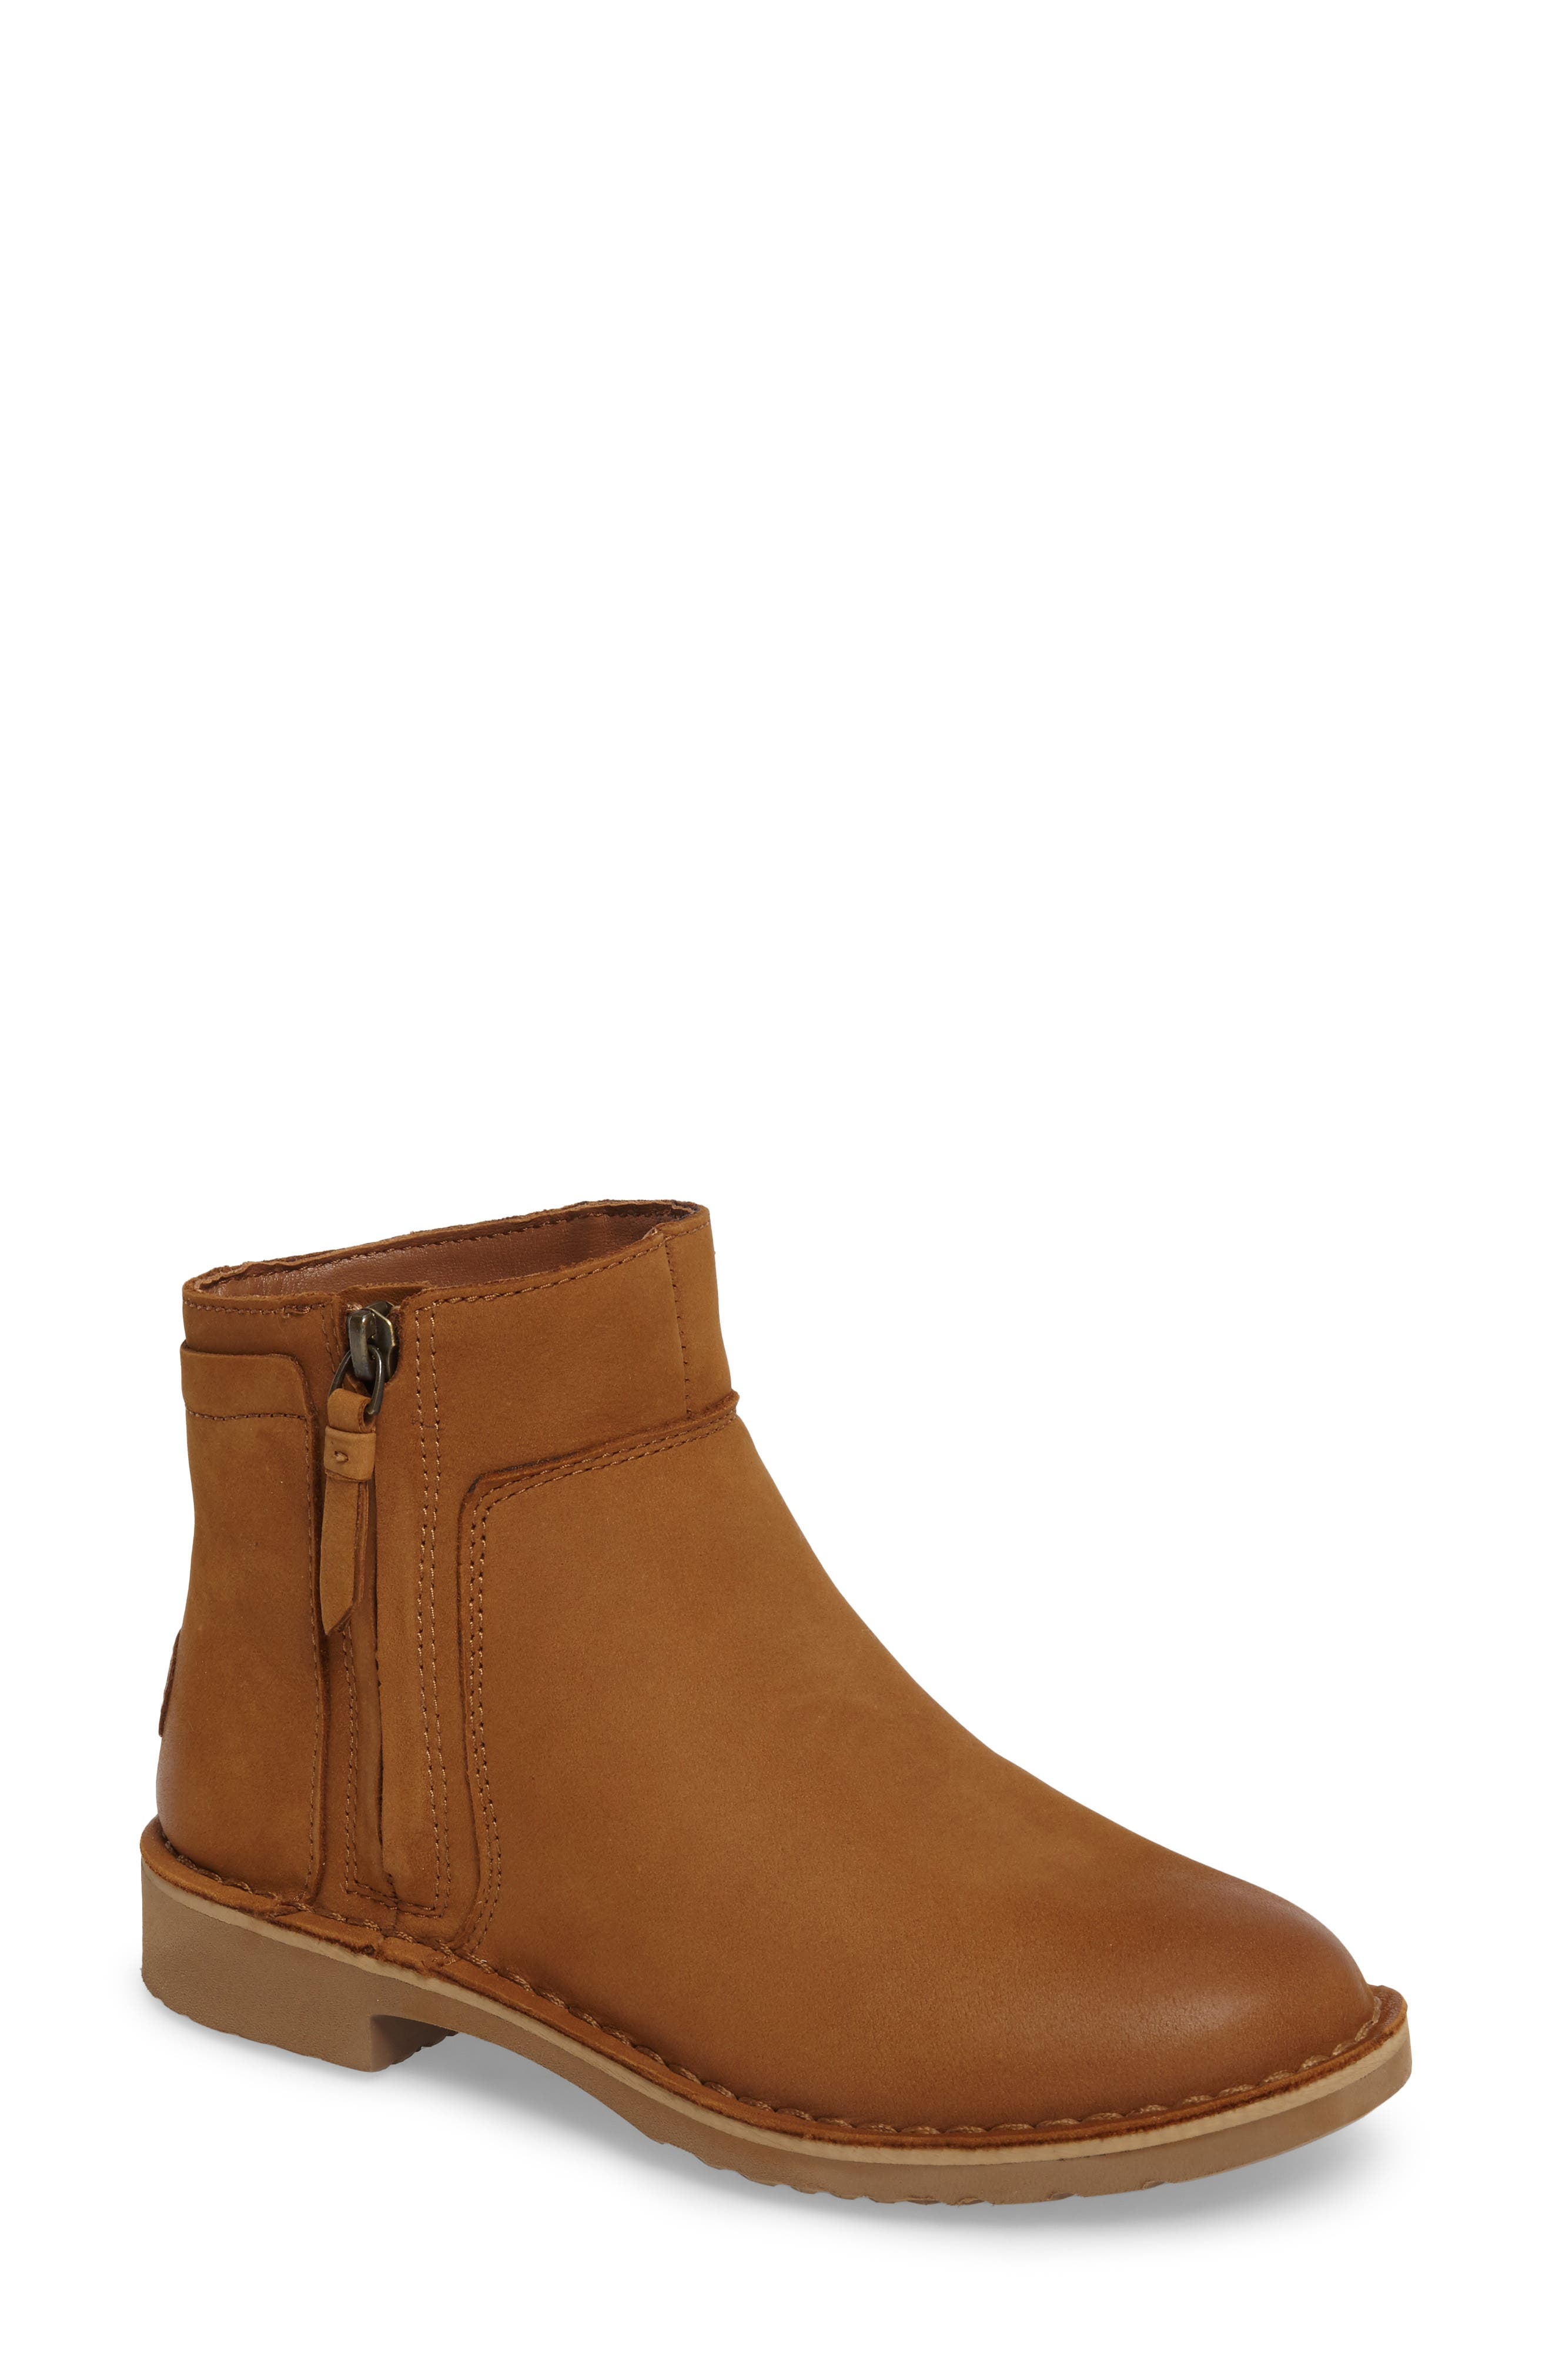 Alternate Image 1 Selected - UGG® Rea Bootie (Women)